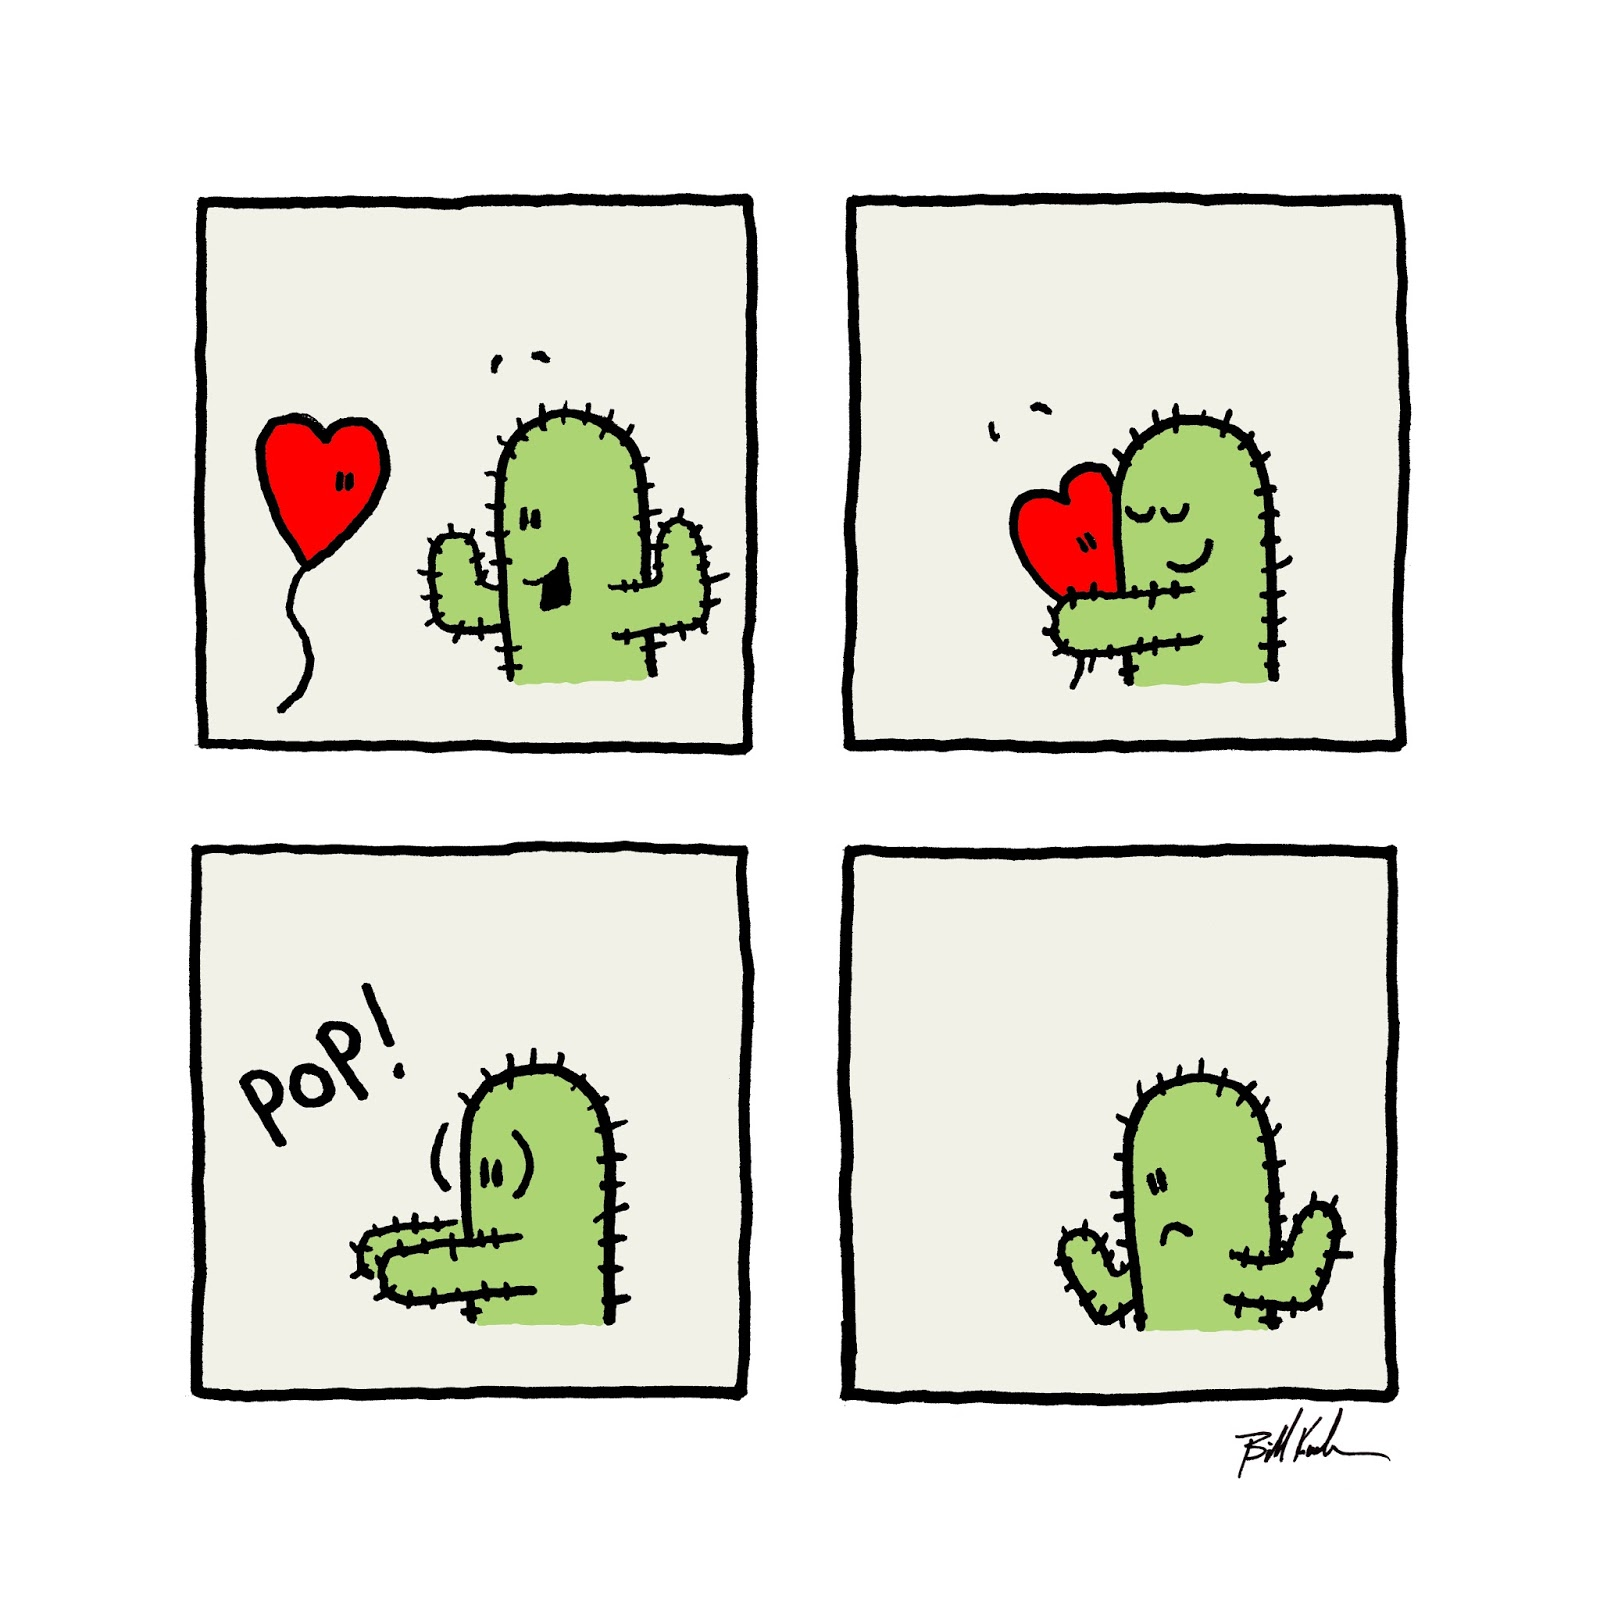 The Lonely Cactus' Valentine's Day